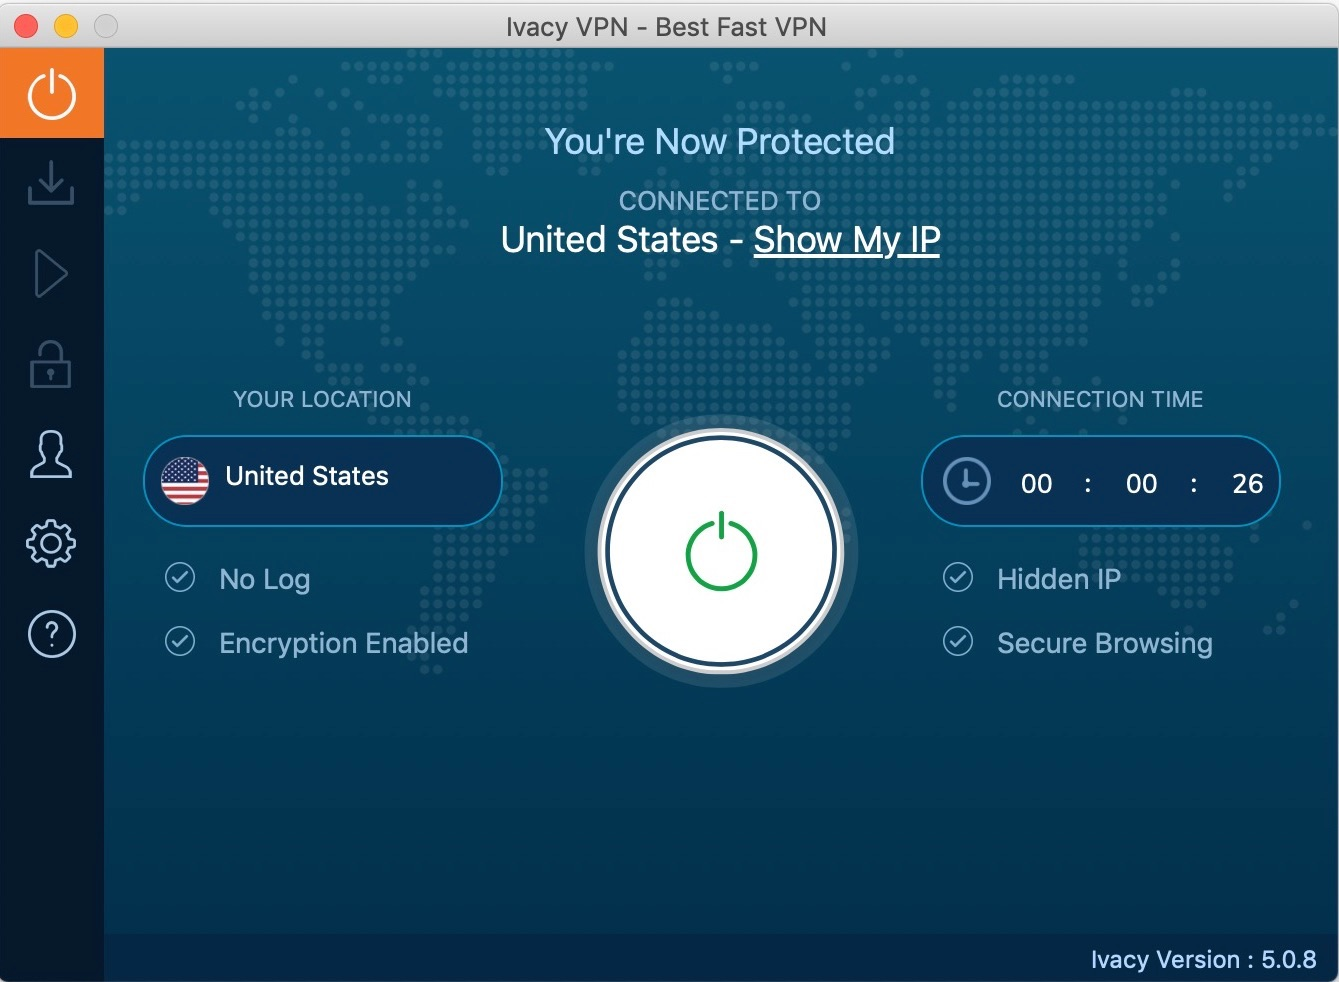 Ivacy VPN Review for macOS and iOS - Mac, iPhone, and iPad